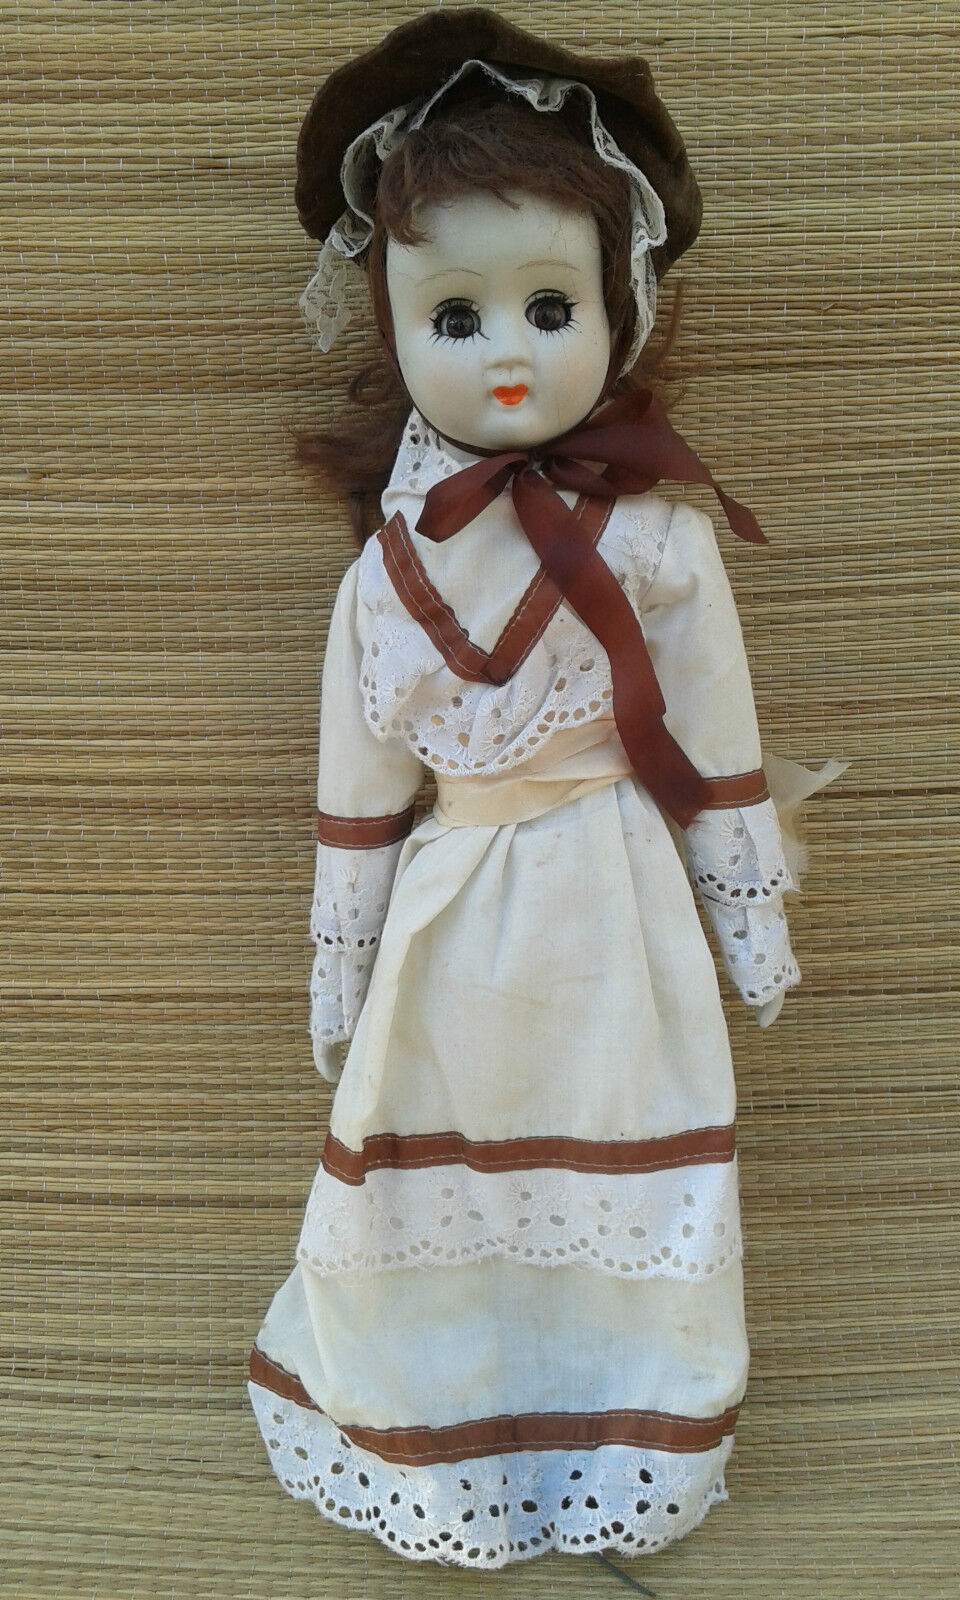 Old doll porcelain, toy, collection, old porcelan doll